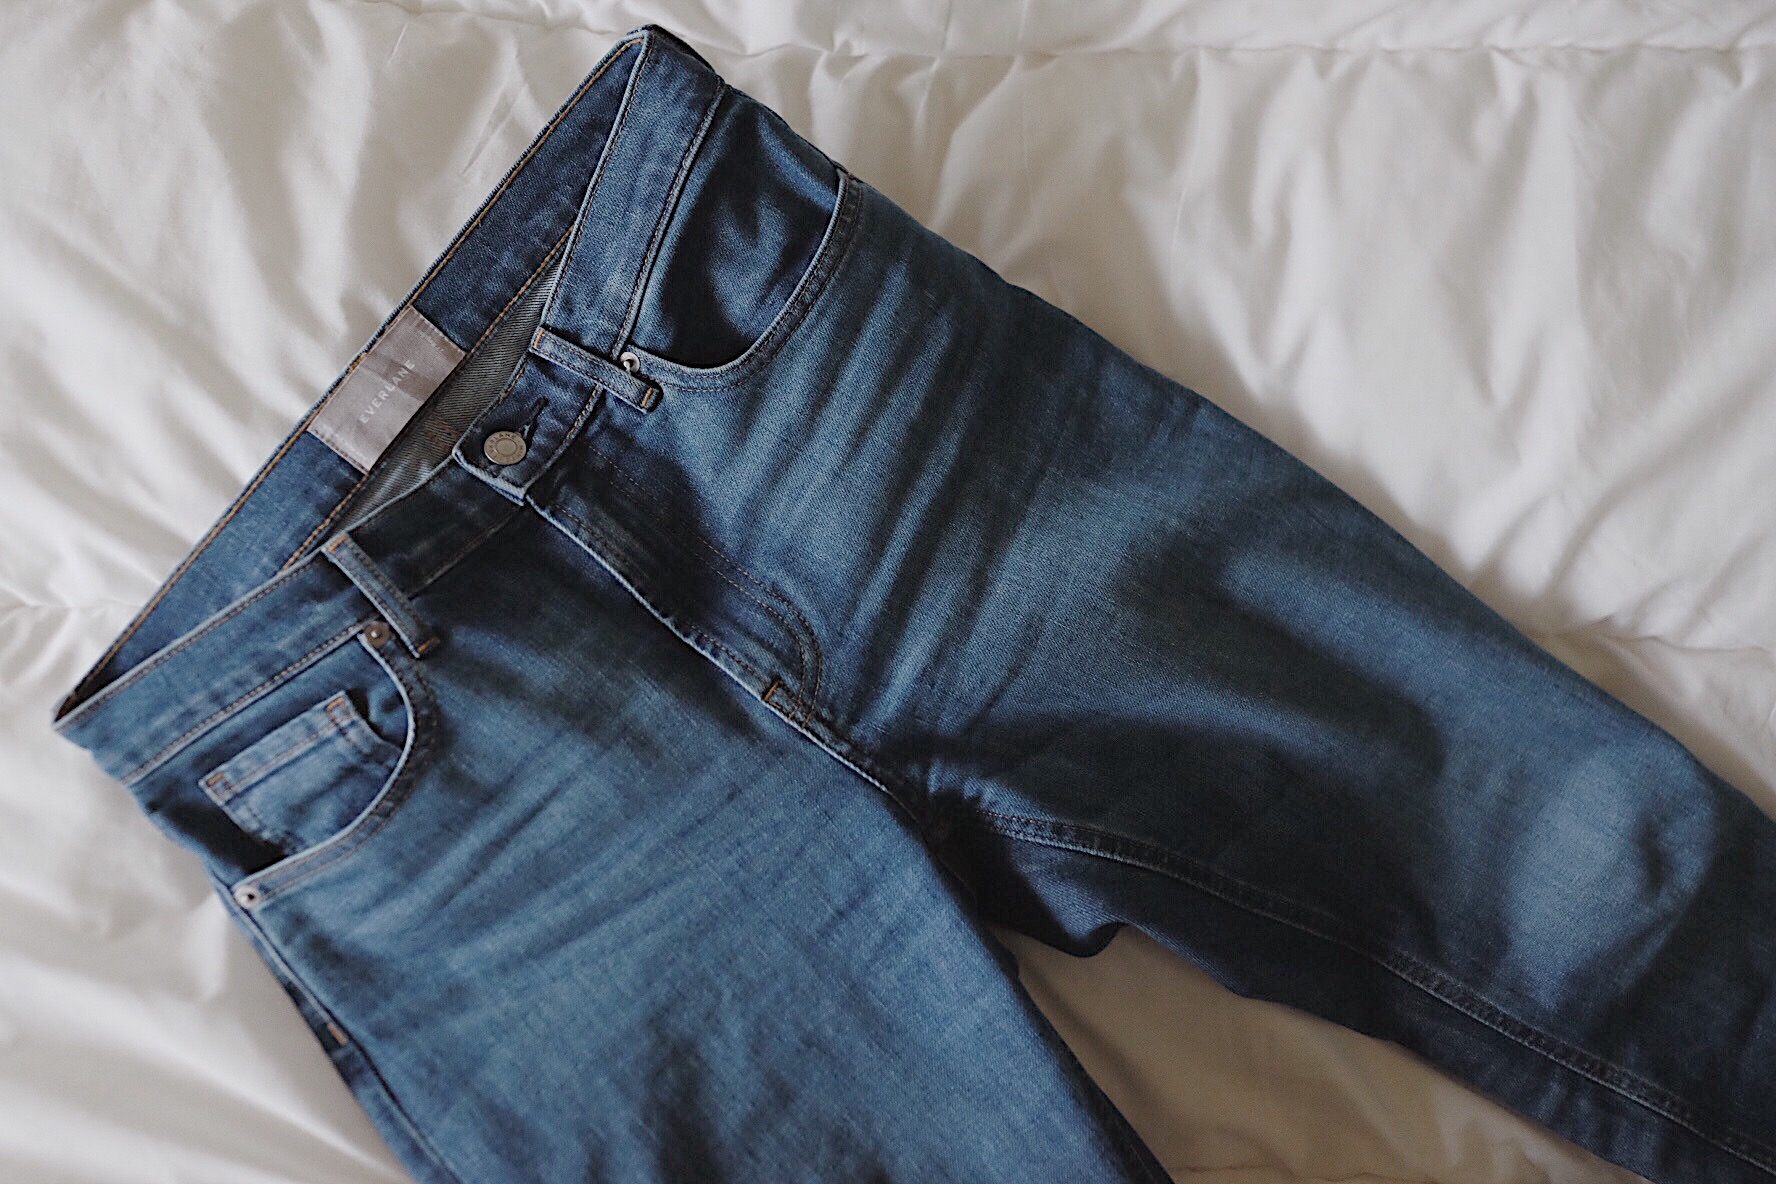 Everlane High Waisted Jean Review   Selflessly Styled